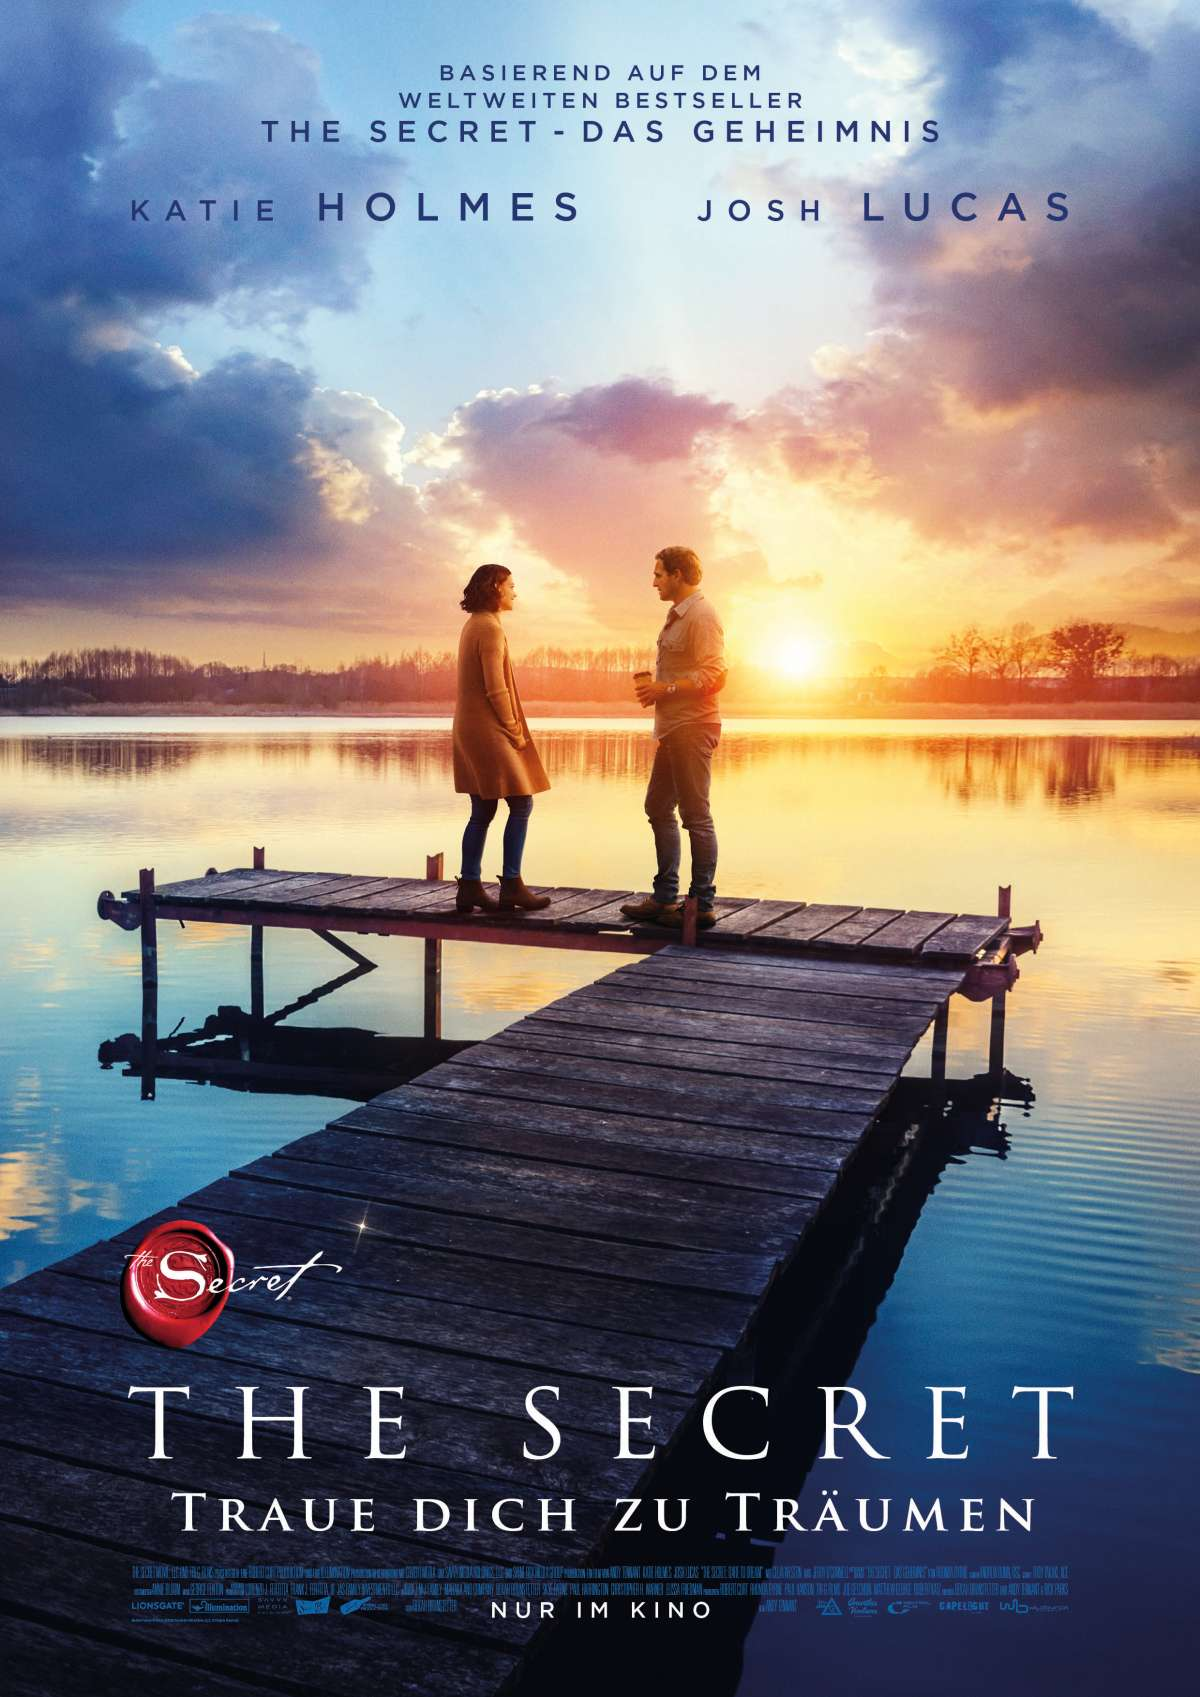 The Secret - Traue dich zu träumen - Cine-Royal  - Fritzlar